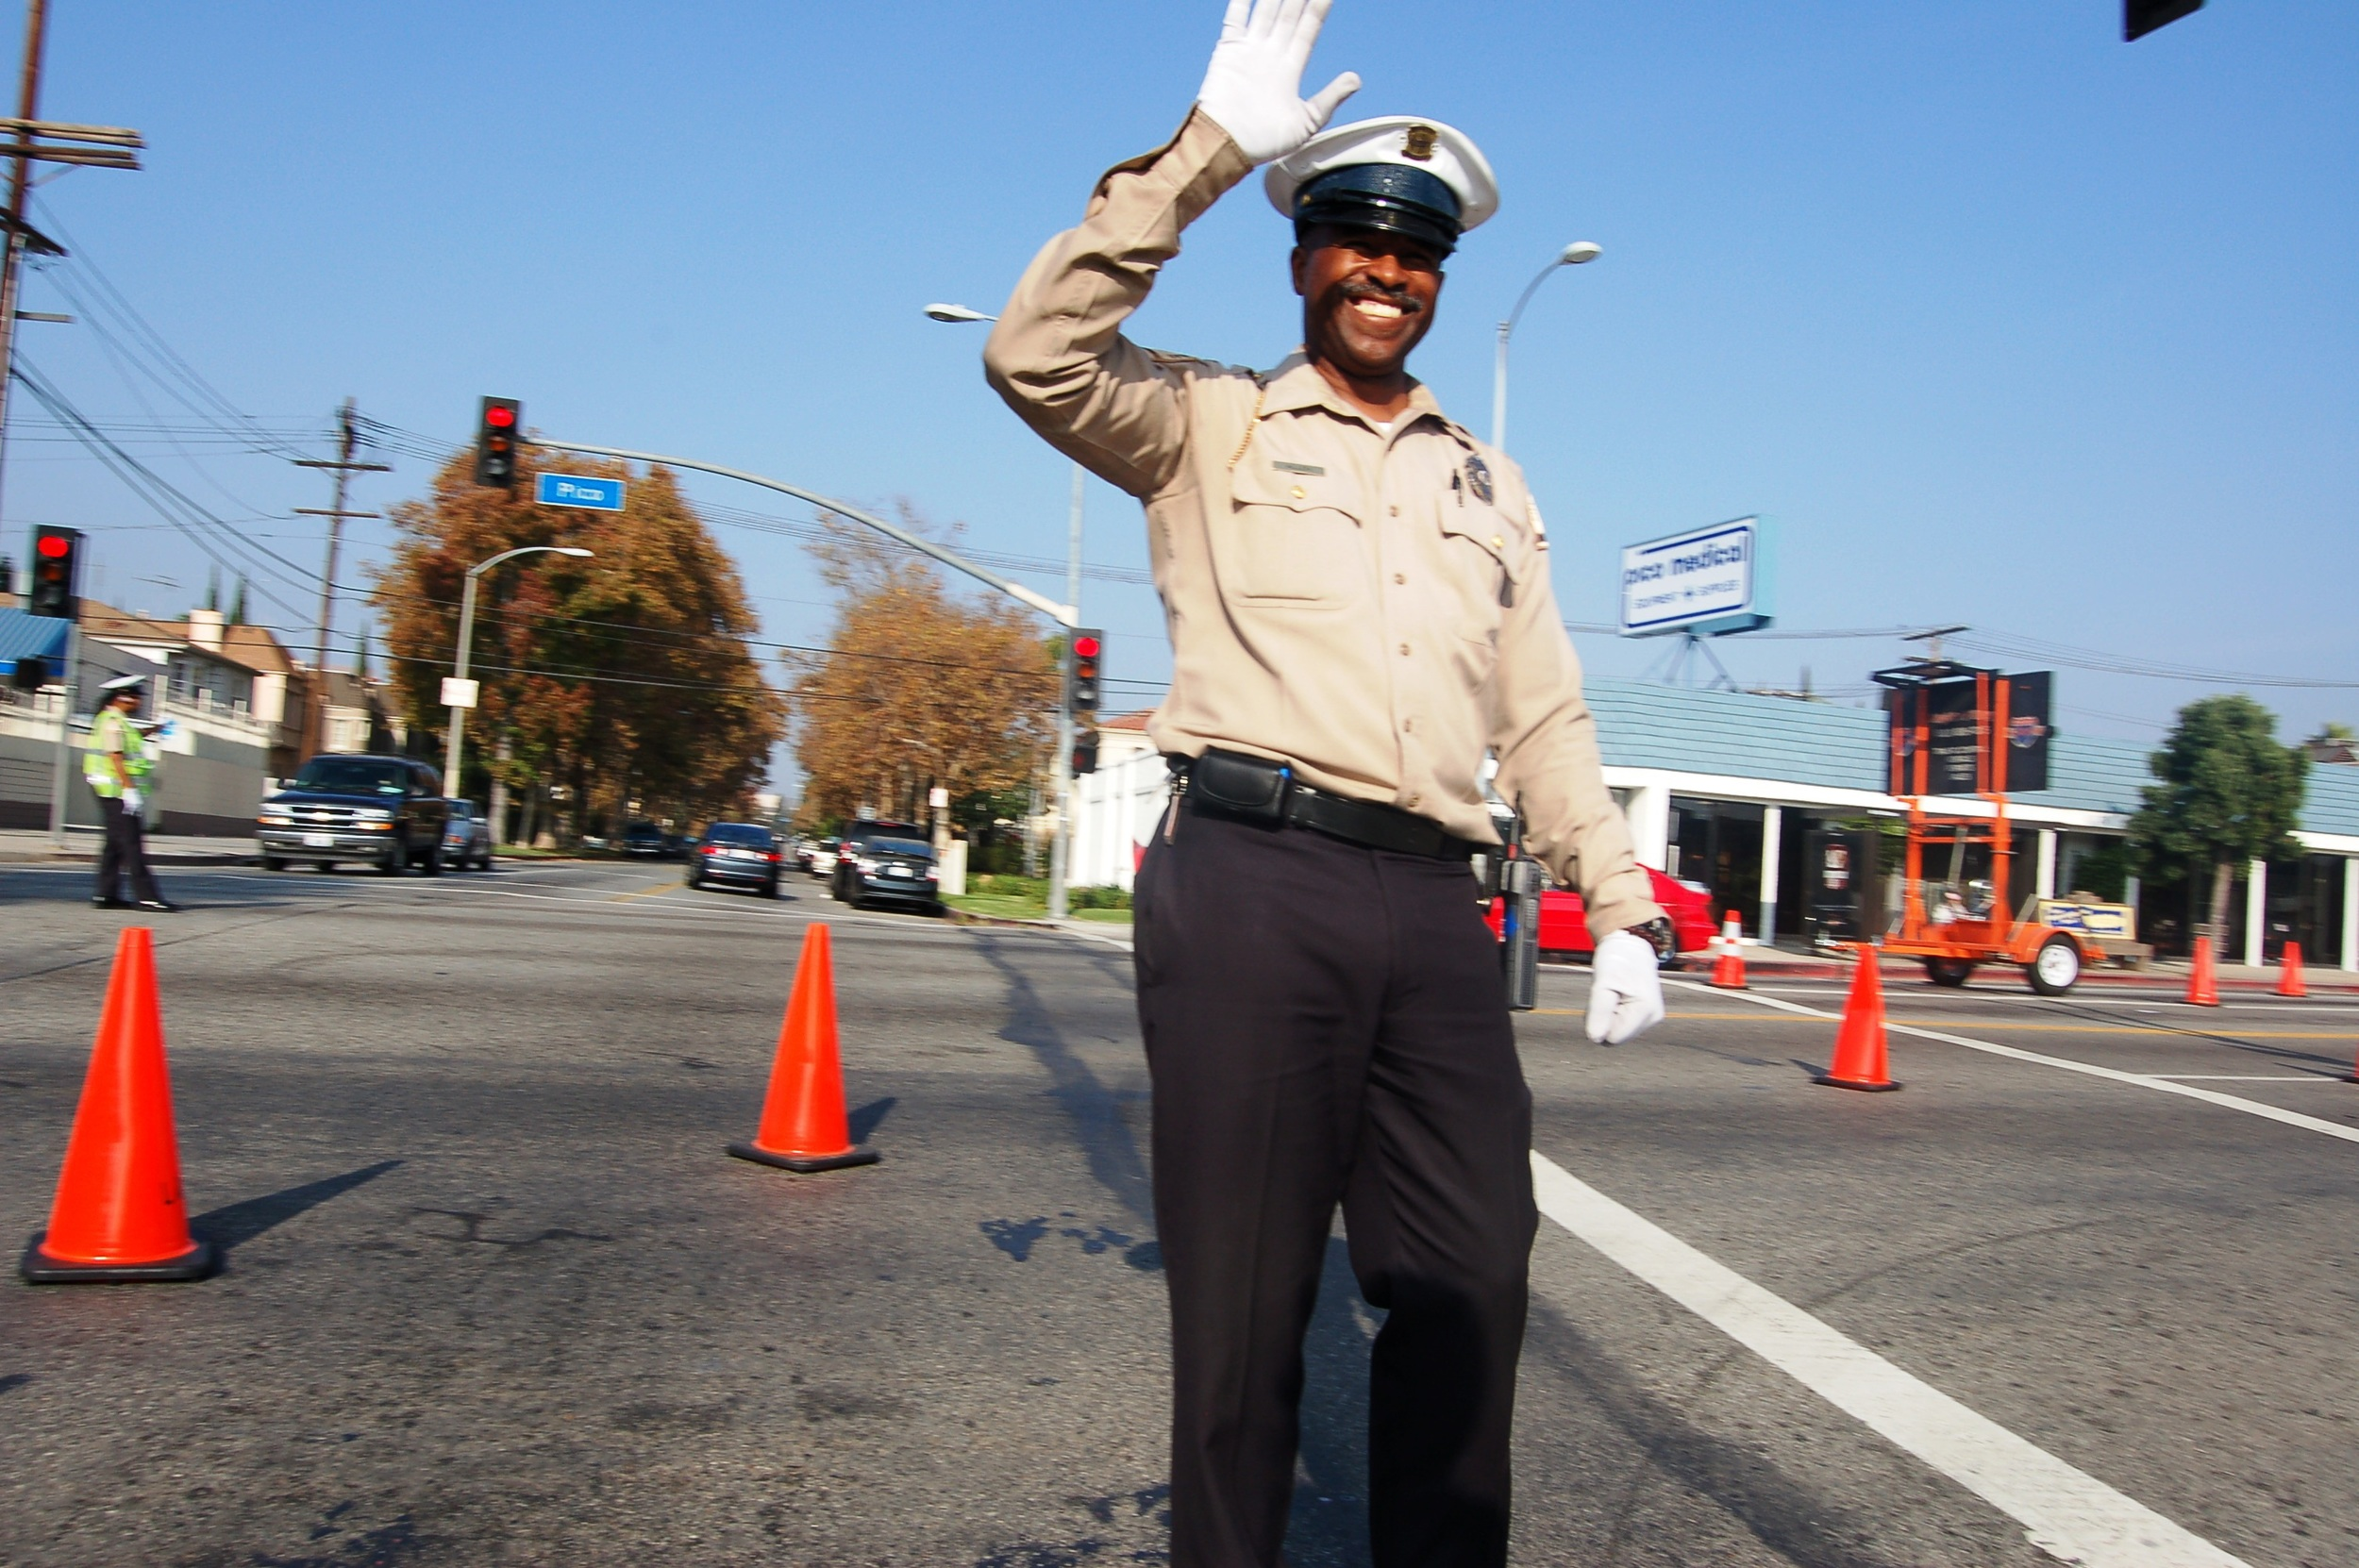 Happiest traffic cop